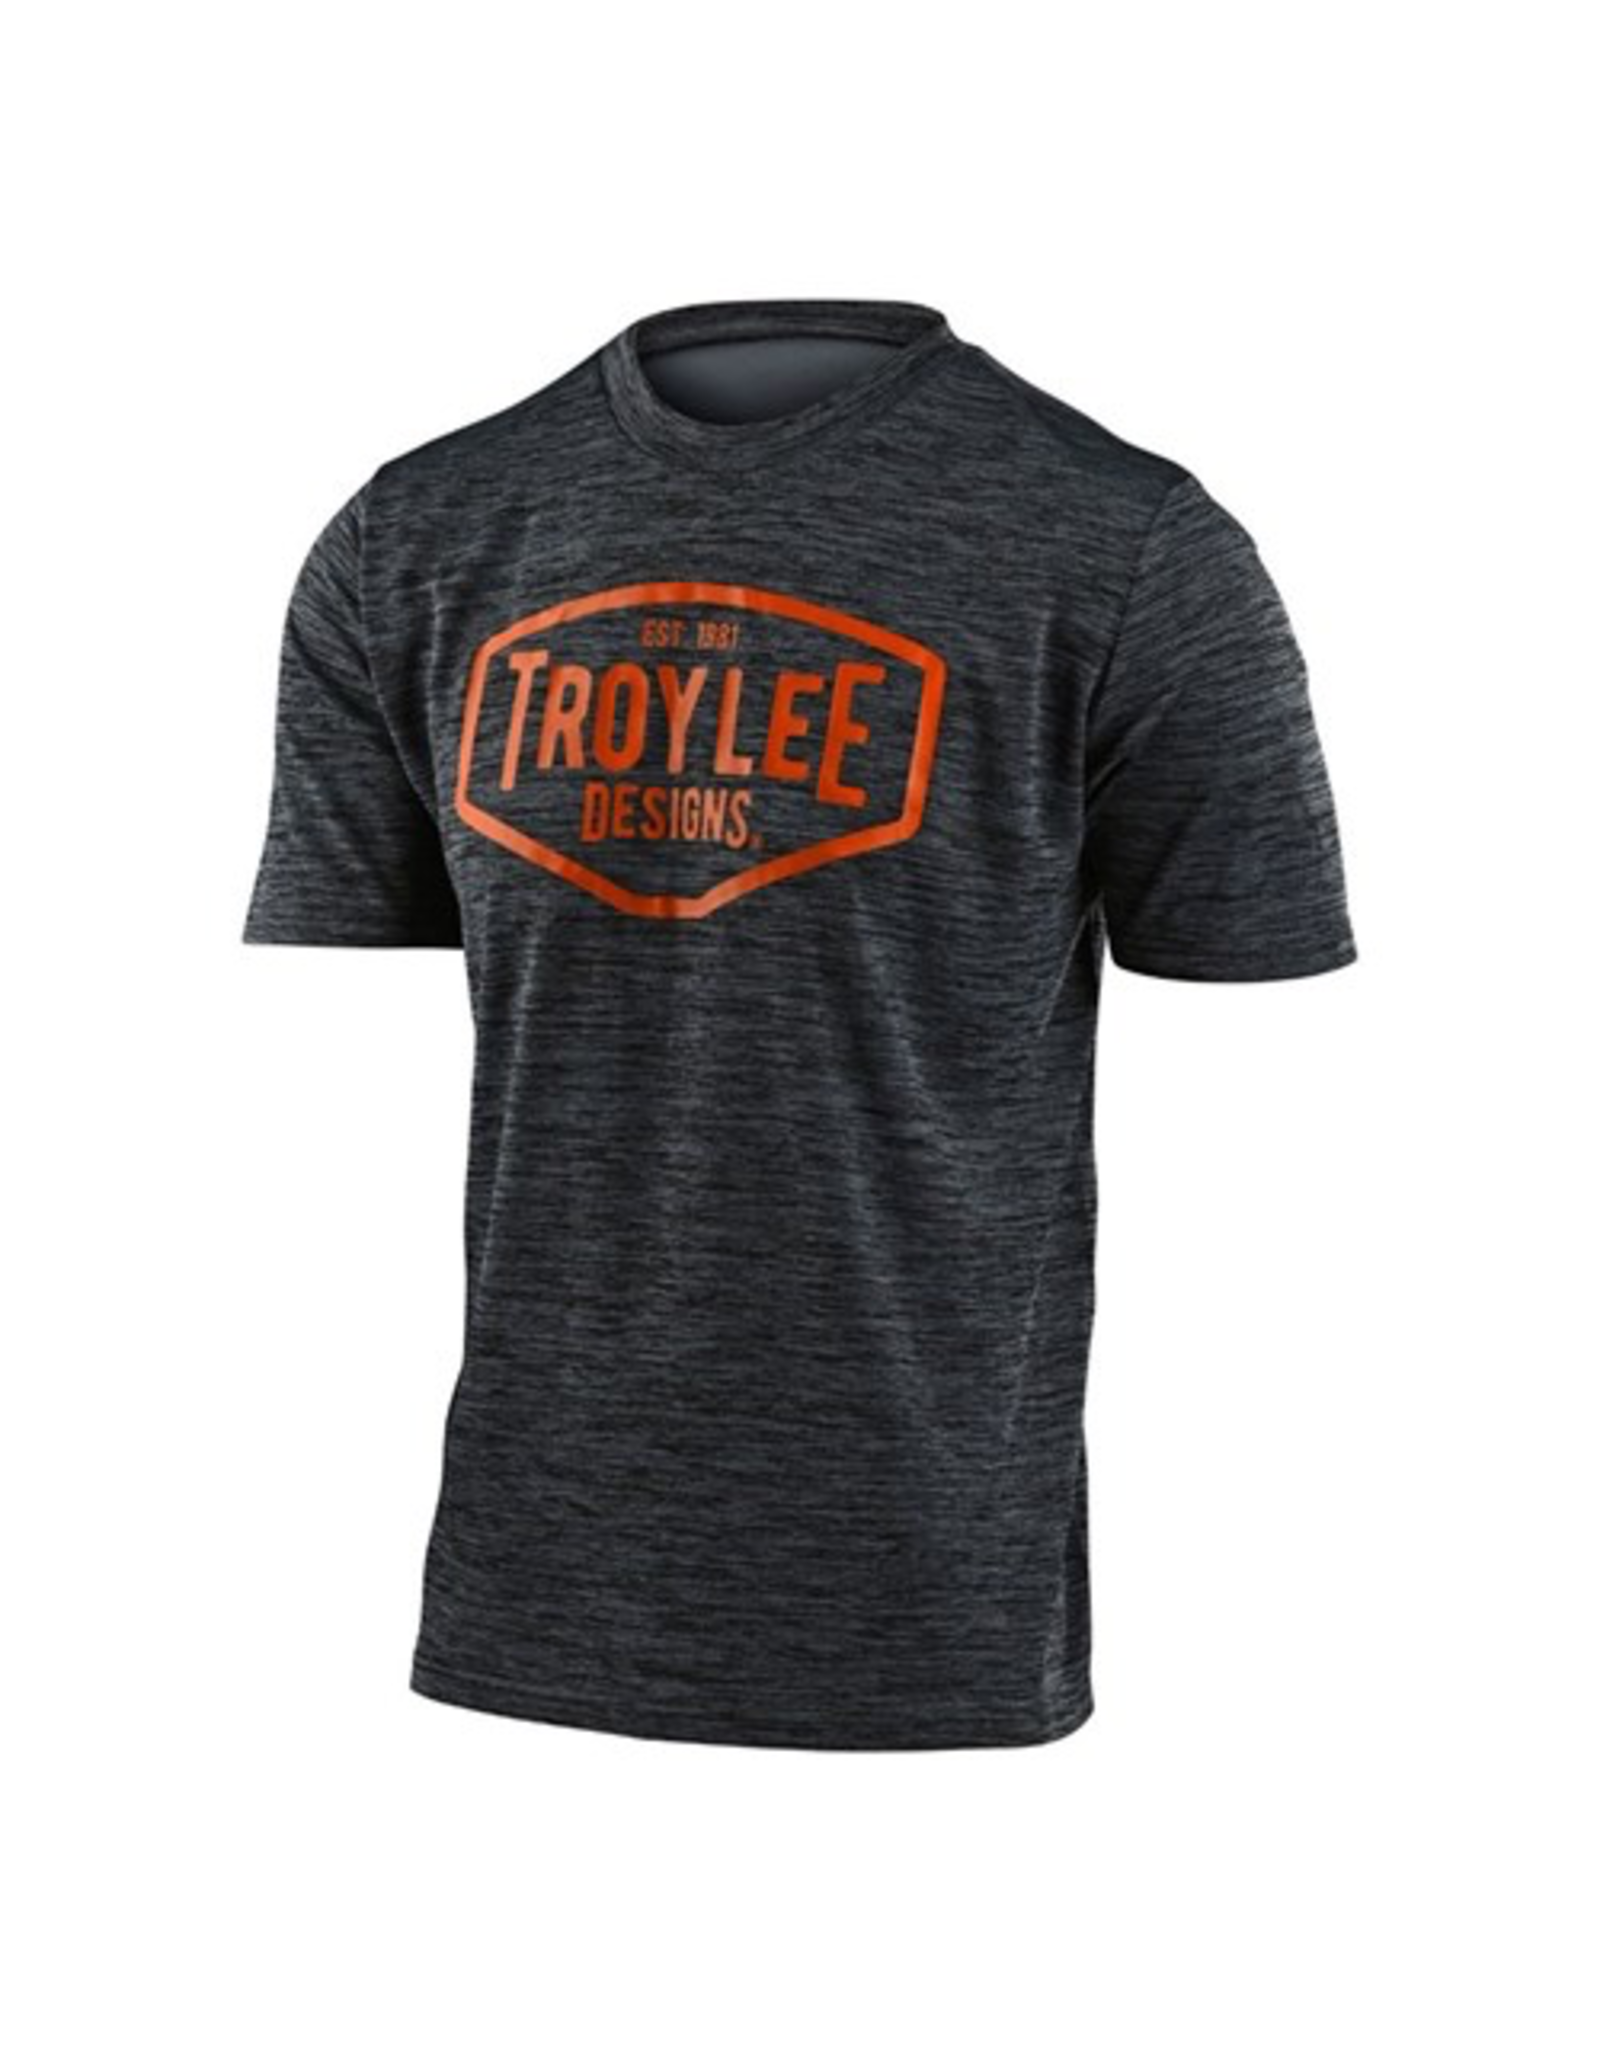 TROY LEE DESIGNS TROY LEE DESIGNS '20 YOUTH FLOWLINE STATION SS JERSEY